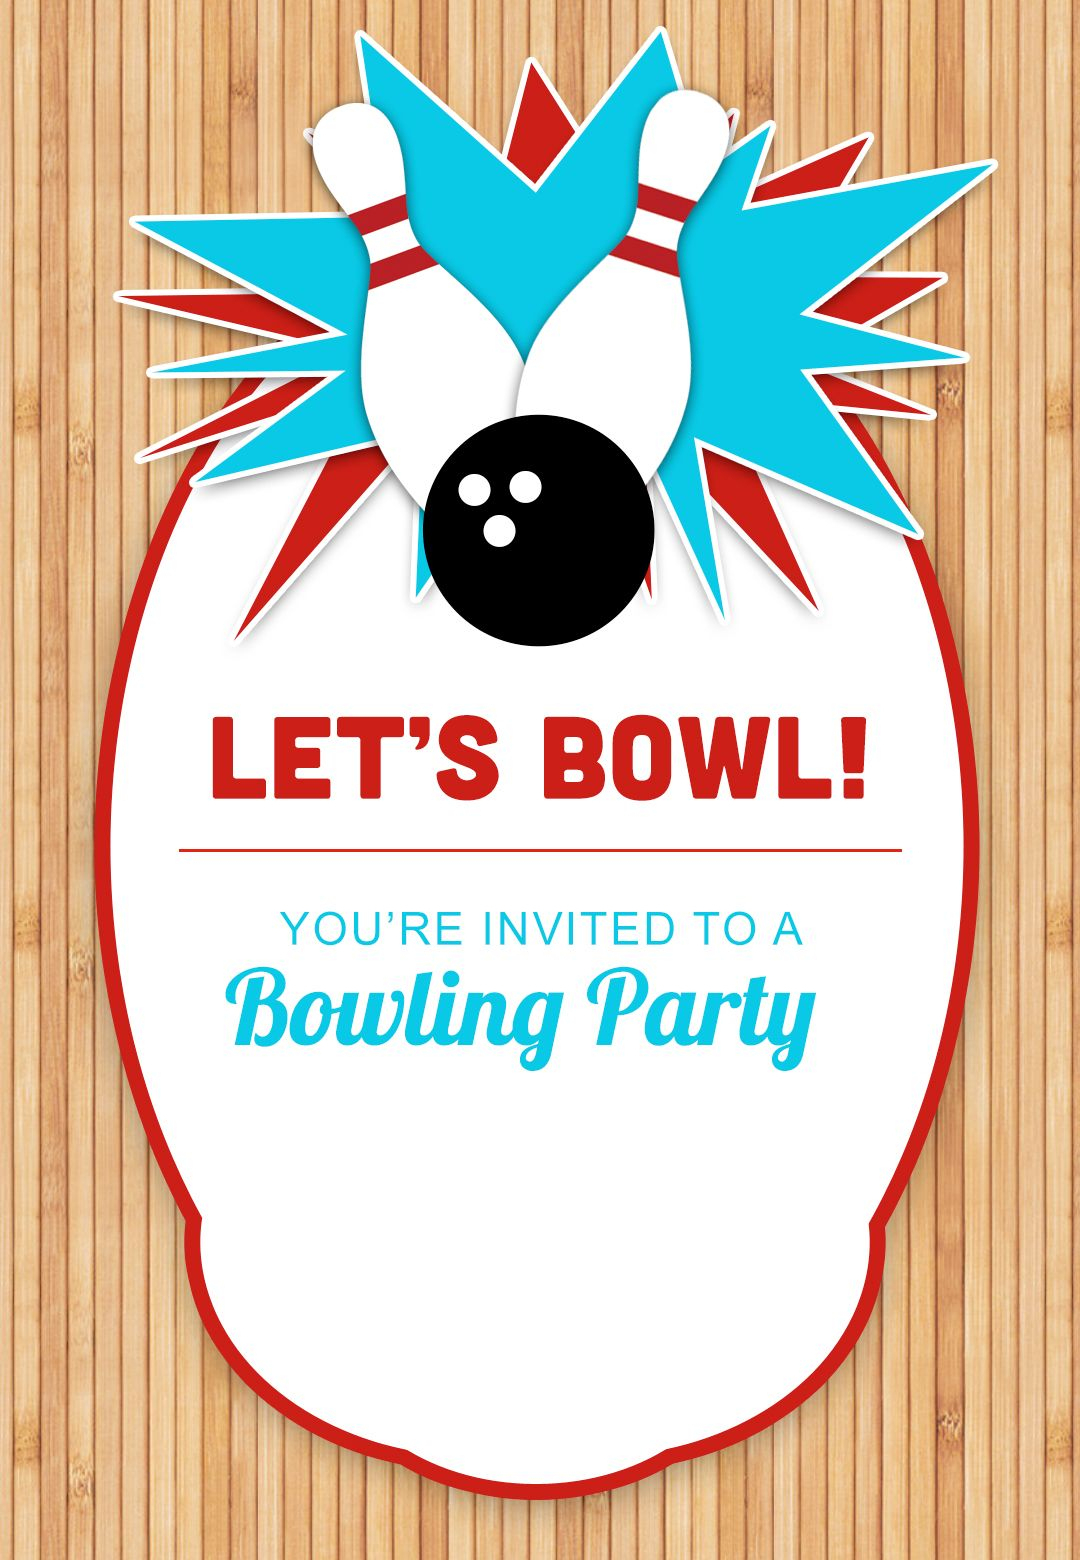 Bowling Party - Free Printable Birthday Invitation Template - Free Printable Birthday Invitations With Pictures